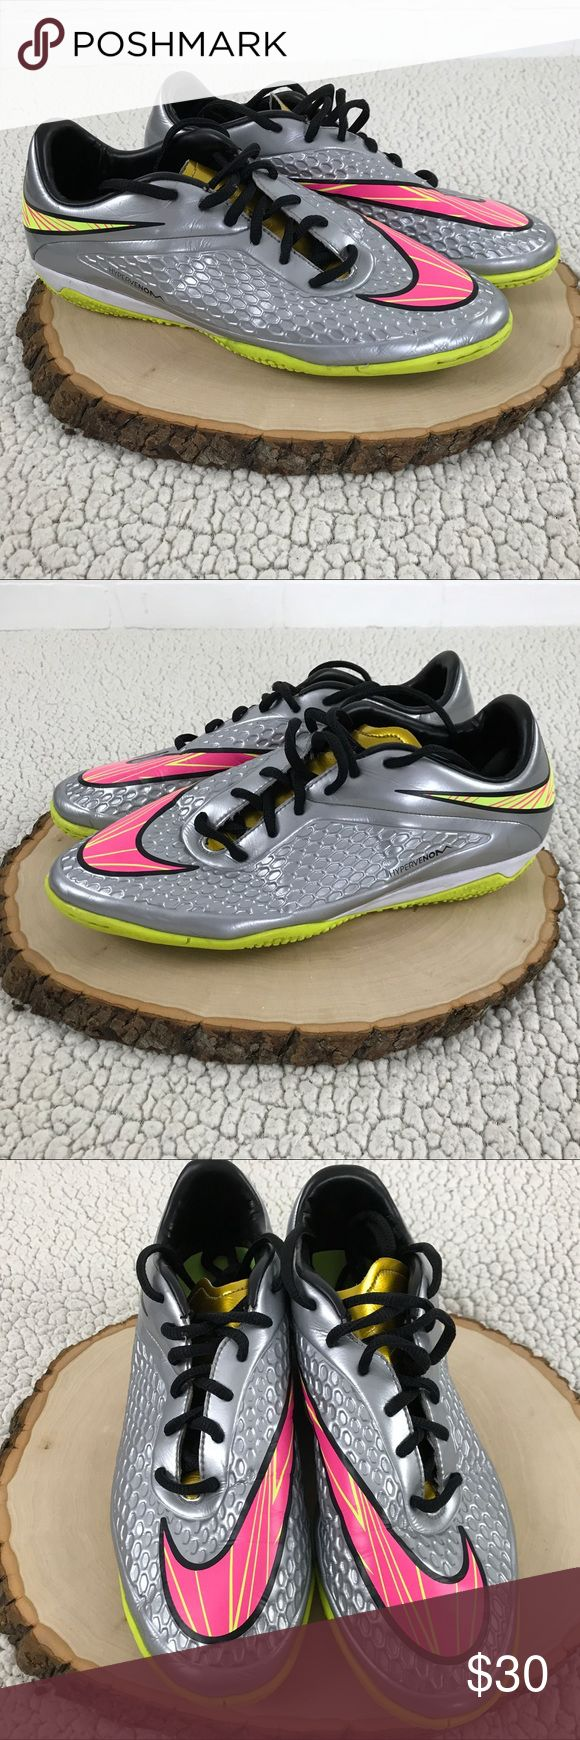 Hypervenom Phelon Premium IC Indoor Soccer Cleats These cleats are previously worn, and have lots of life left in them. There is some wear, most notably some minor creasing. Please see photos for detail. Nike Shoes Athletic Shoes